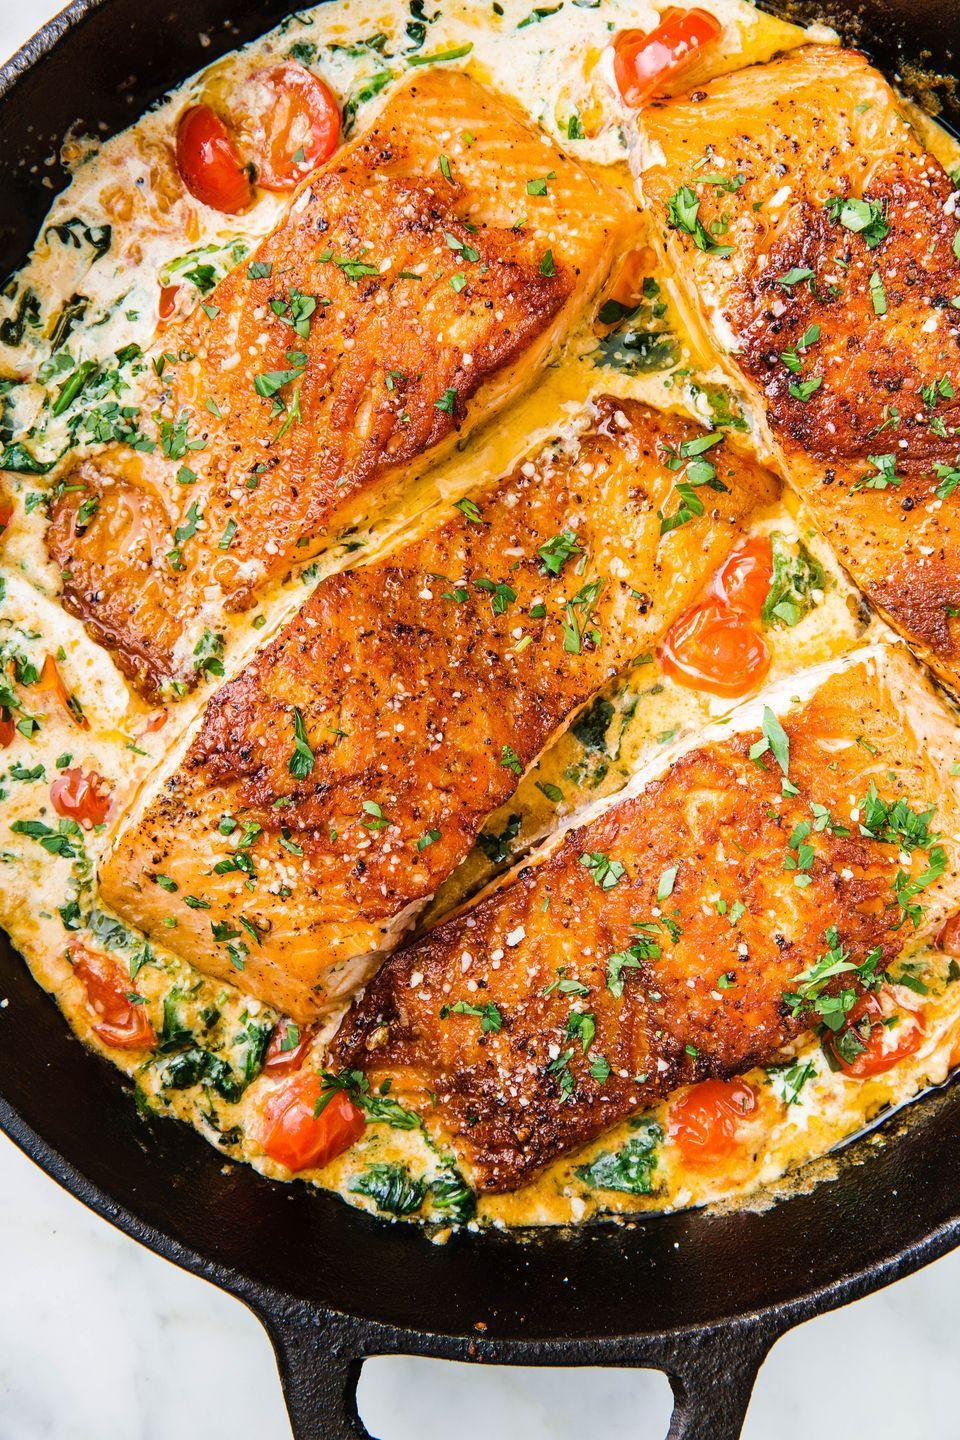 "<p>Your new favorite salmon recipe.</p><p>Get the recipe from <a href=""https://www.delish.com/cooking/recipe-ideas/recipes/a58412/tuscan-butter-salmon-recipe/"" rel=""nofollow noopener"" target=""_blank"" data-ylk=""slk:Delish"" class=""link rapid-noclick-resp"">Delish</a>.</p><p><strong><em>BUY NOW: Le Creuset Braiser, $294.95, <a href=""https://www.amazon.com/Creuset-Signature-Enameled-Cast-Iron-4-Quart/dp/B0076NORDA/?tag=syn-yahoo-20&ascsubtag=%5Bartid%7C1782.g.4203%5Bsrc%7Cyahoo-us"" rel=""nofollow noopener"" target=""_blank"" data-ylk=""slk:amazon.com"" class=""link rapid-noclick-resp"">amazon.com</a>.</em></strong></p>"